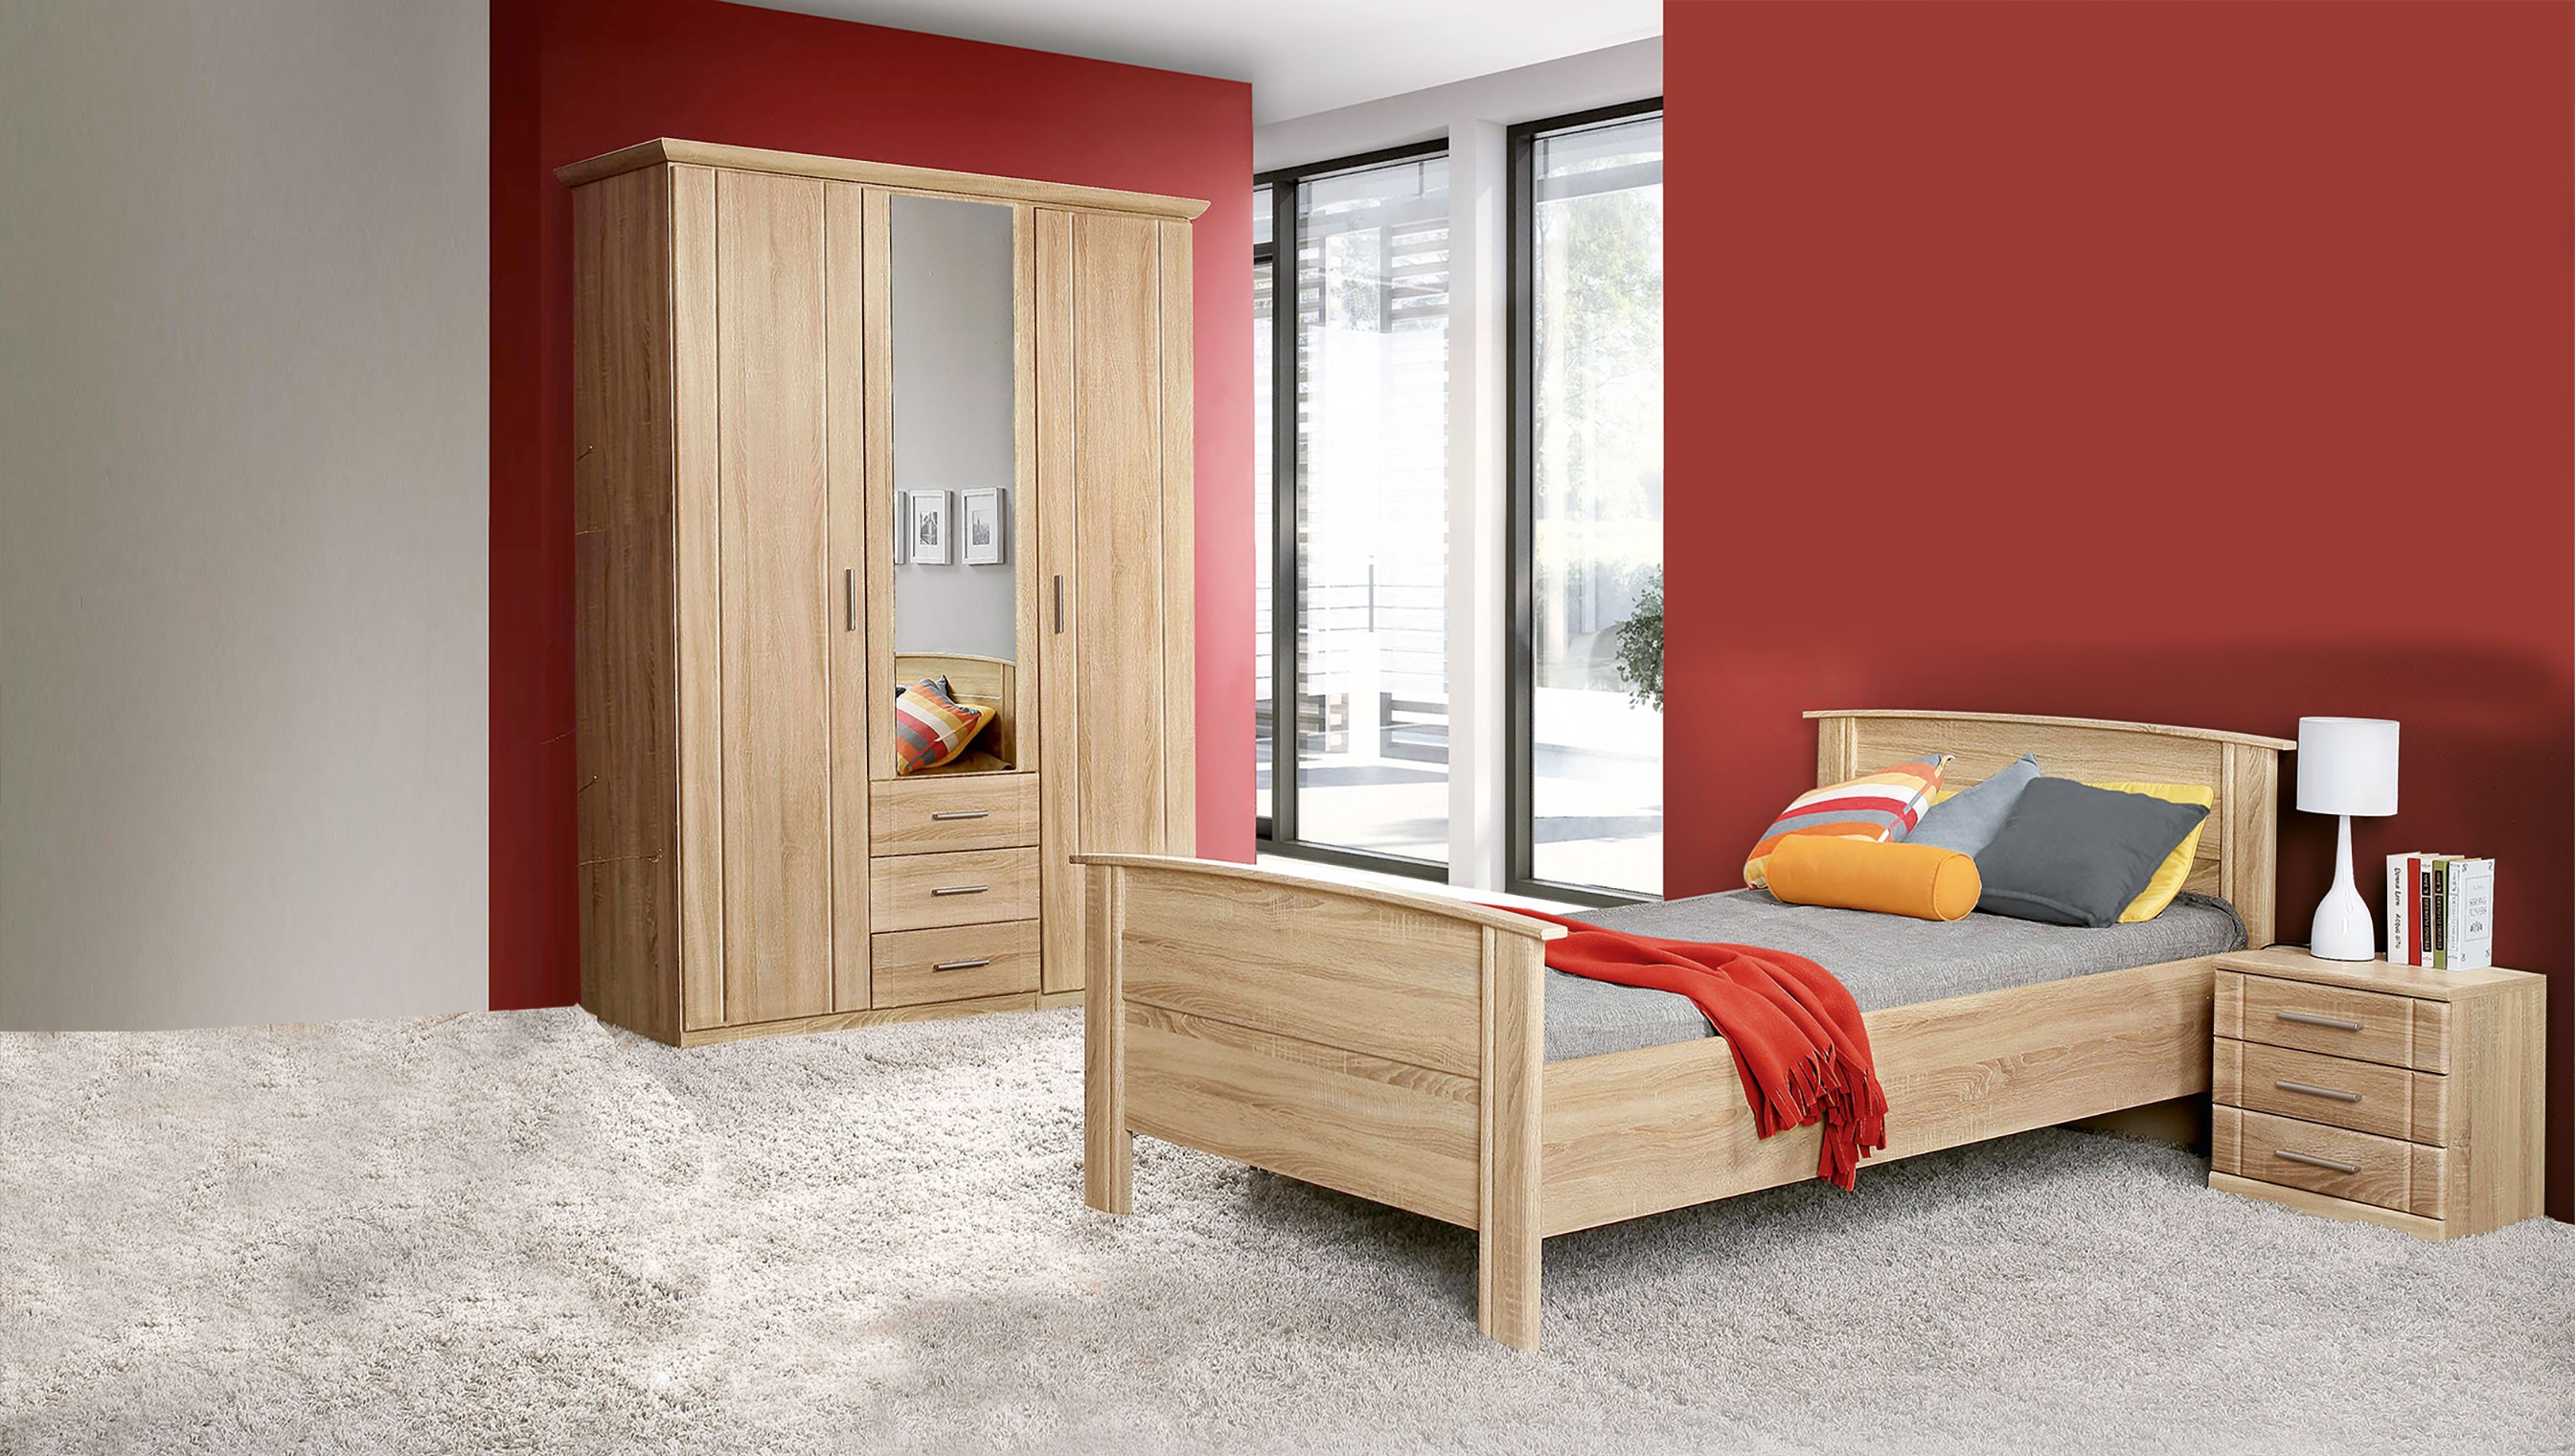 bett sonoma eiche bett sonoma eiche with bett sonoma eiche doppelbett mit schubladen nett bett. Black Bedroom Furniture Sets. Home Design Ideas